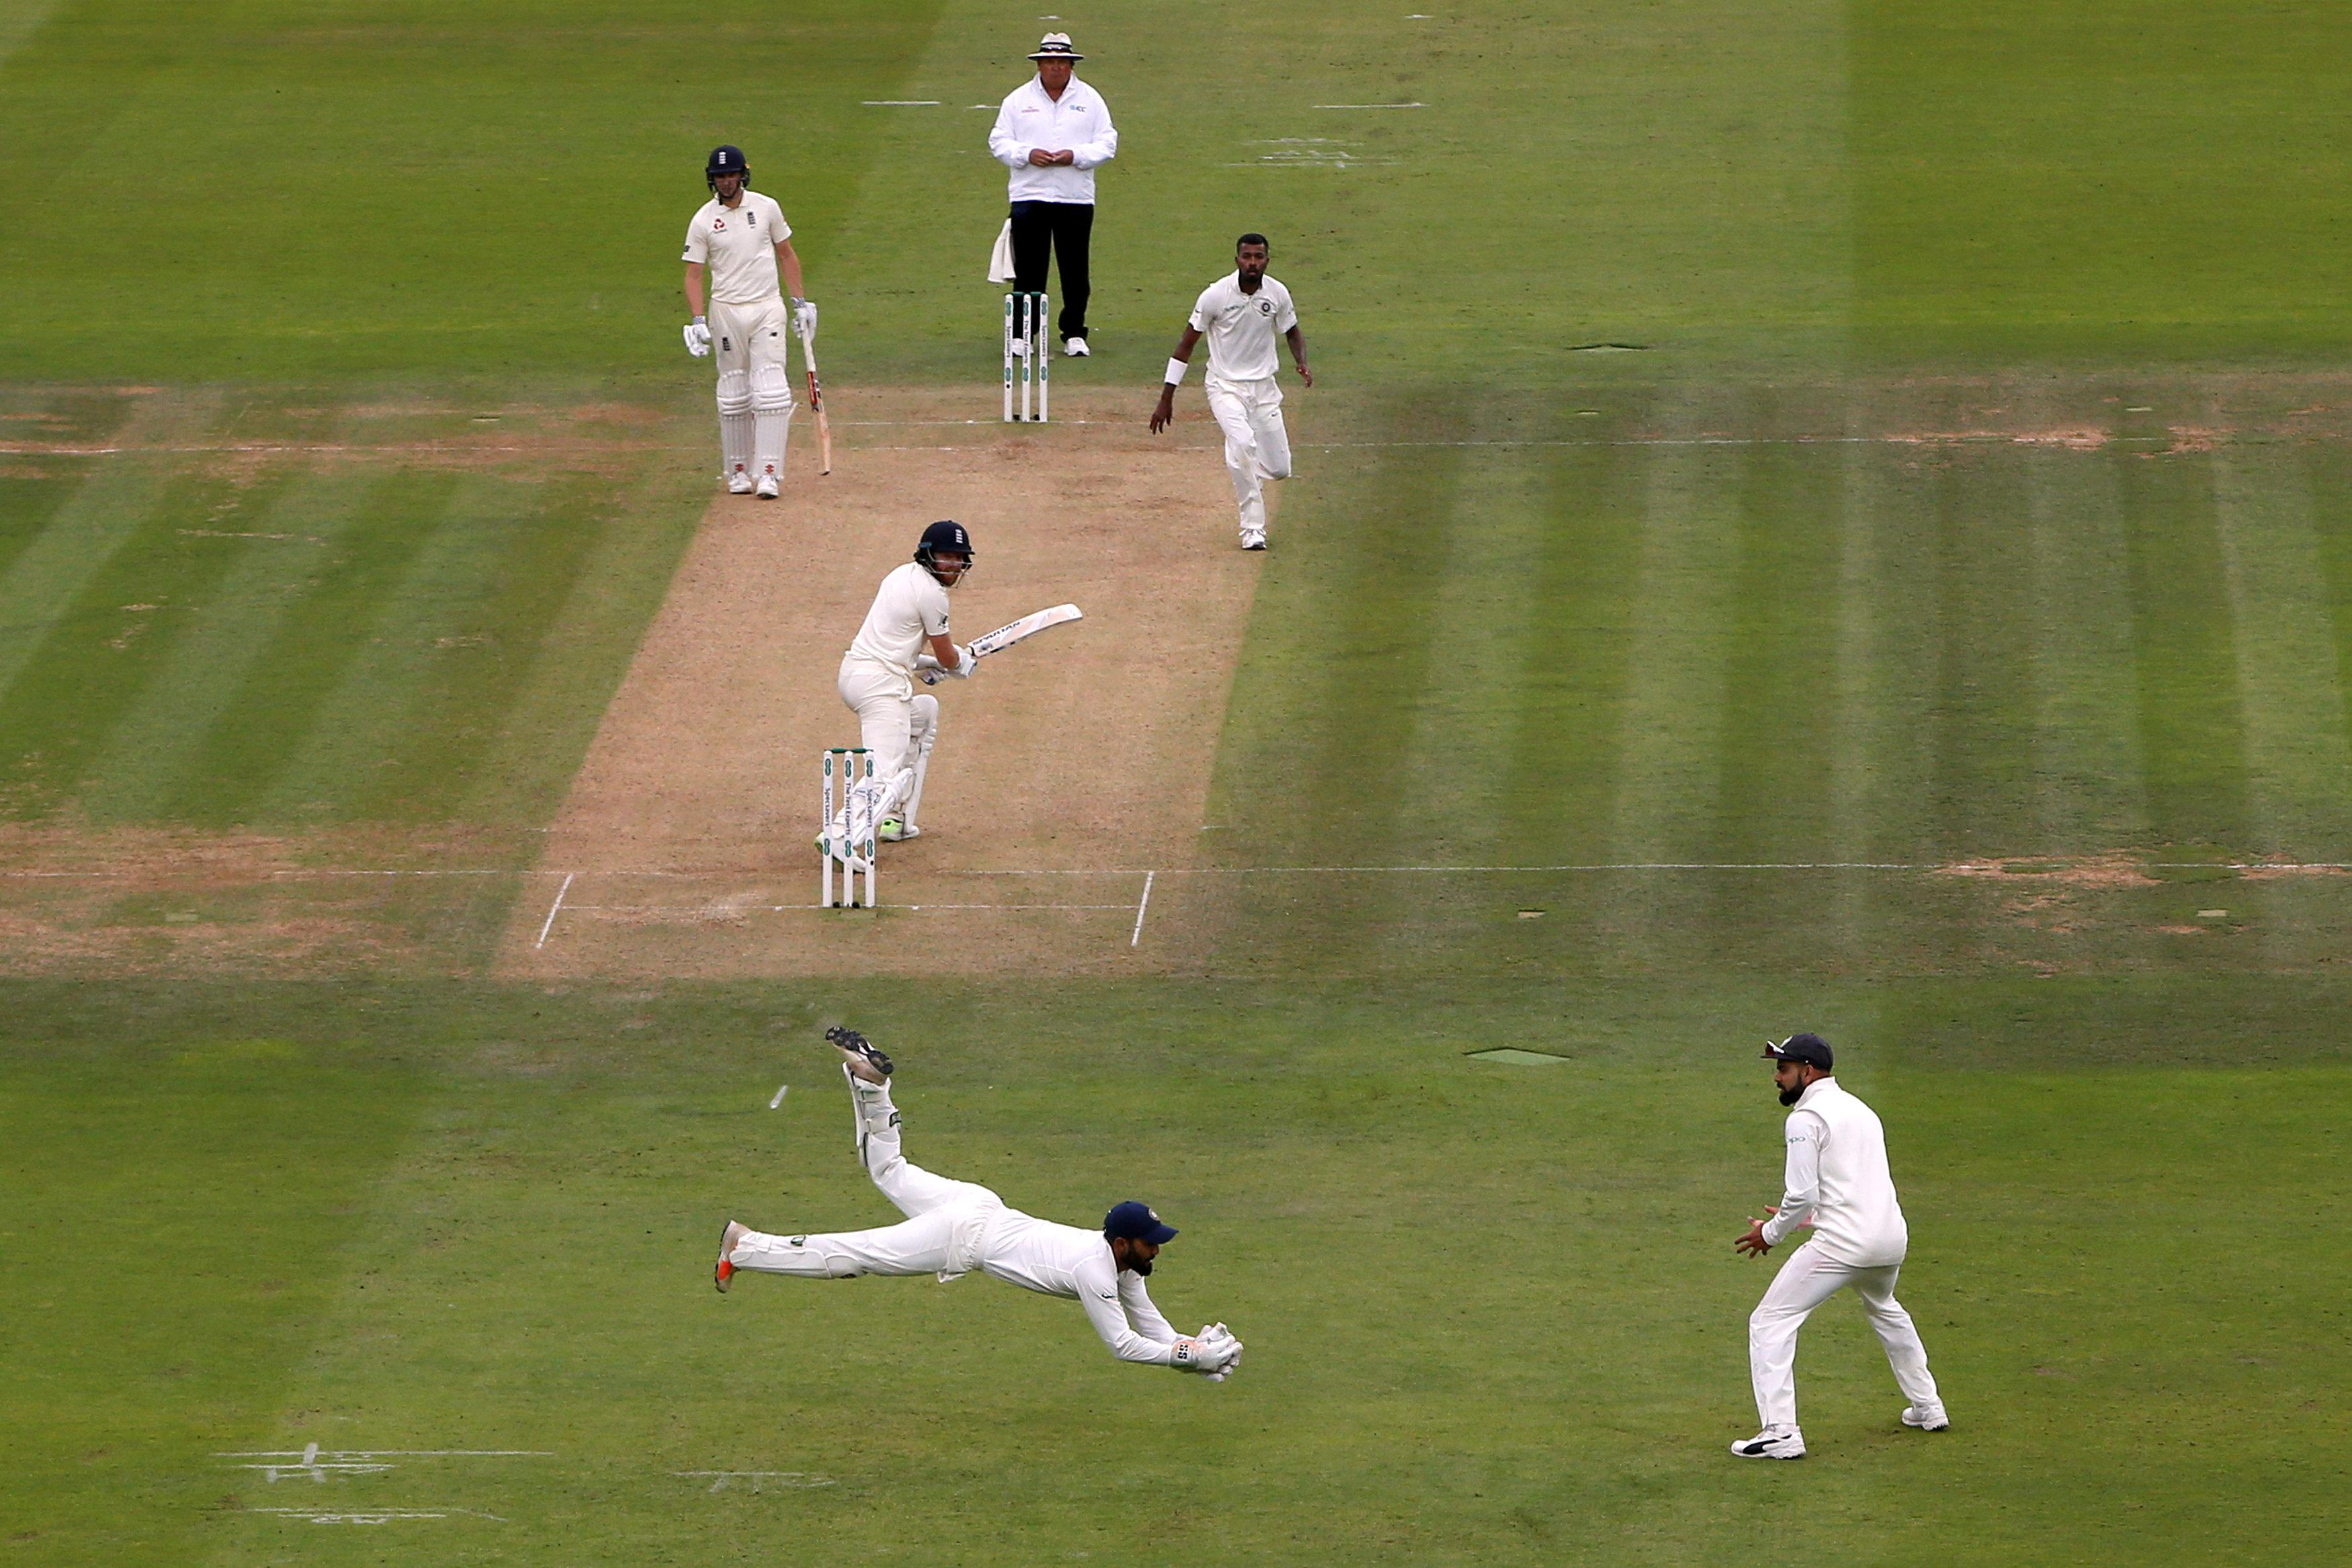 Bairstow was out thanks to a brilliant catch by Dinesh Karthik